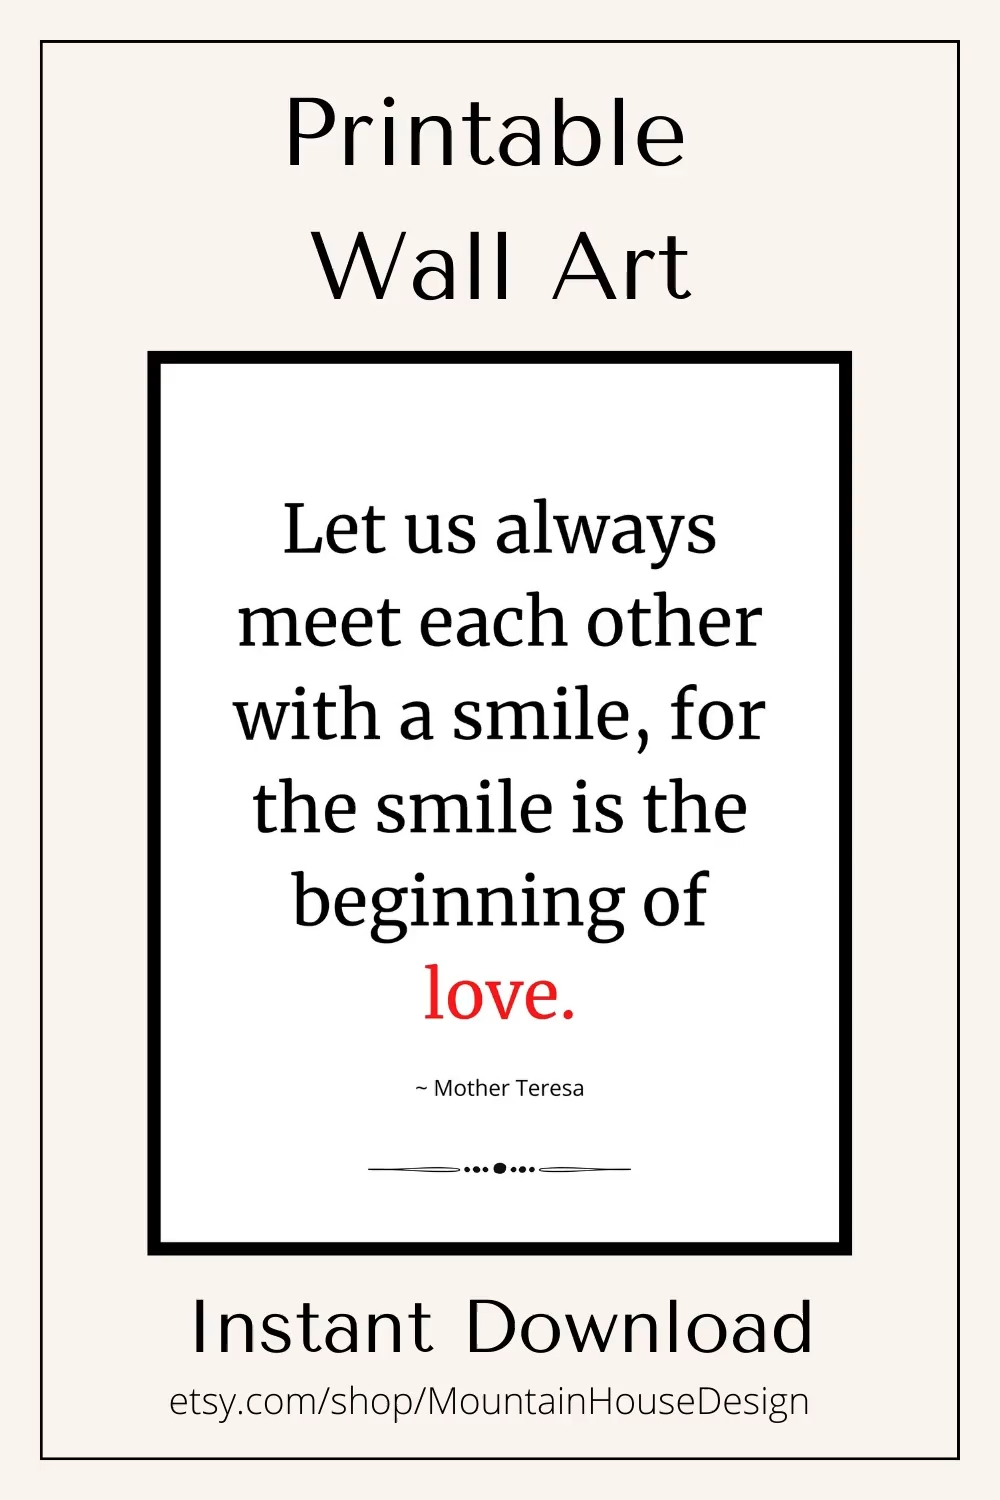 Let Us Always - Love Quote - Inspirational Quote - Printable Art - Cut File - Quote